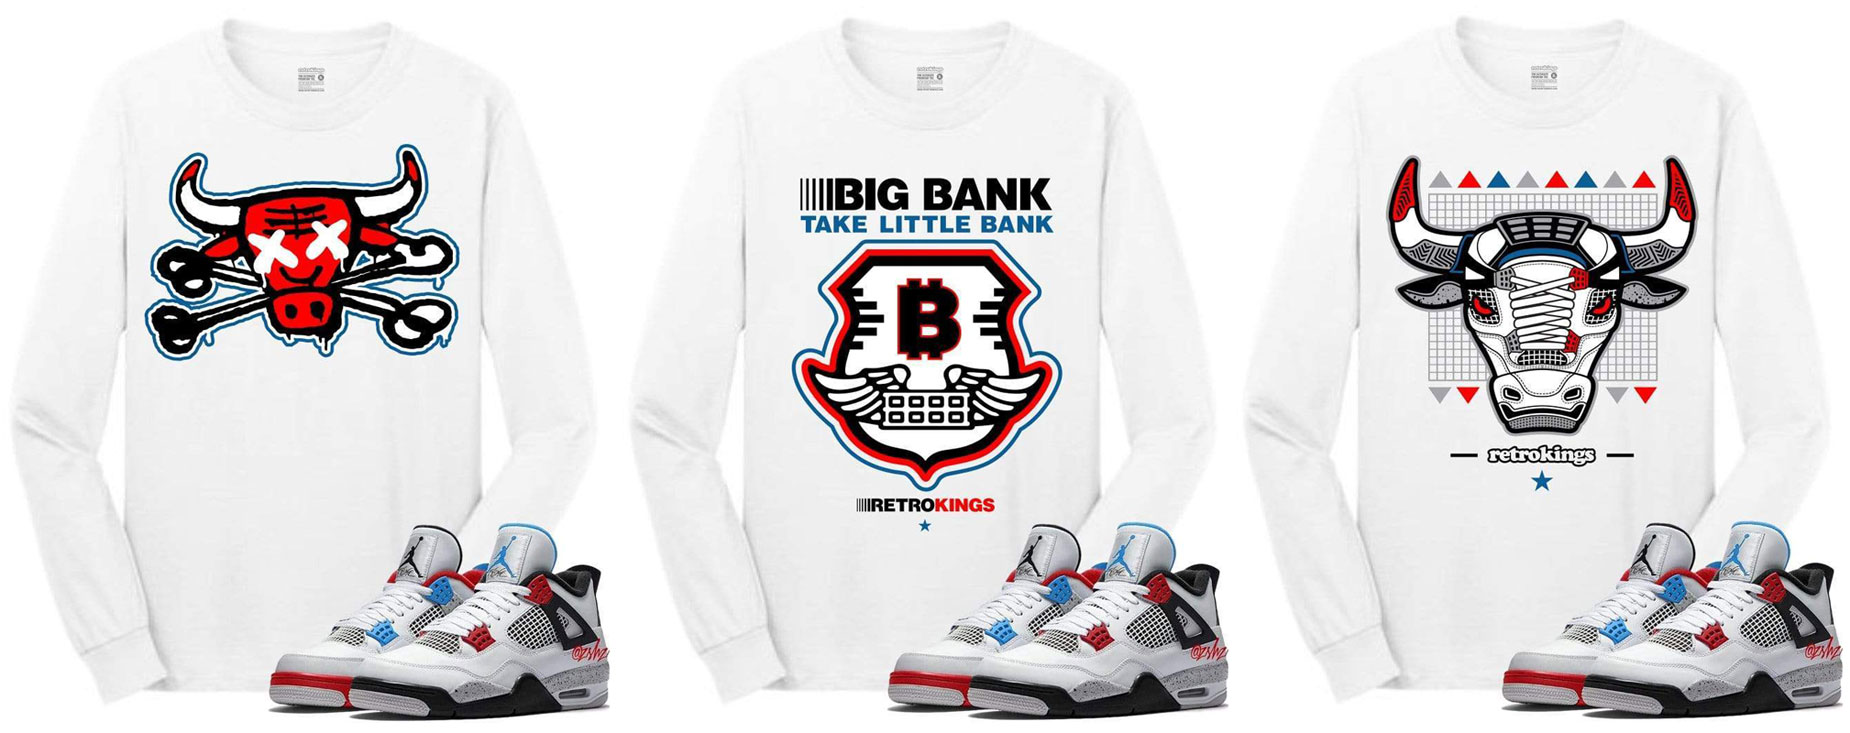 cyber-monday-air-jordan-4-what-the-sneaker-shirts